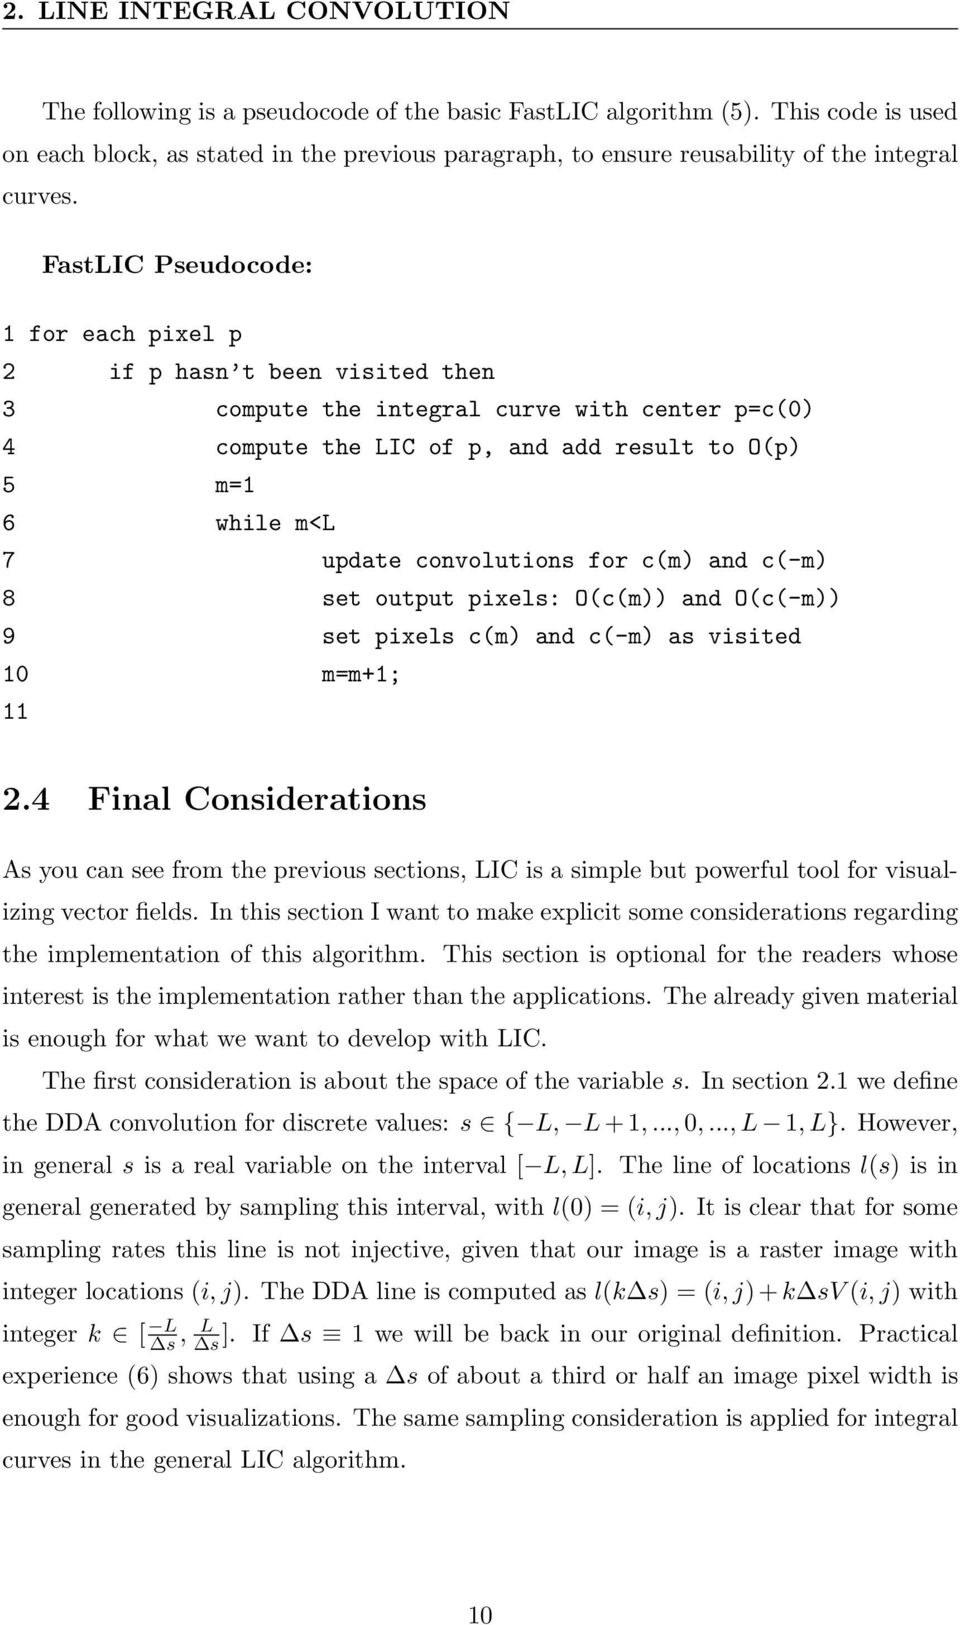 FastLIC Pseudocode: 1 for each pixel p 2 if p hasn t been visited then 3 compute the integral curve with center p=c(0) 4 compute the LIC of p, and add result to O(p) 5 m=1 6 while m<l 7 update